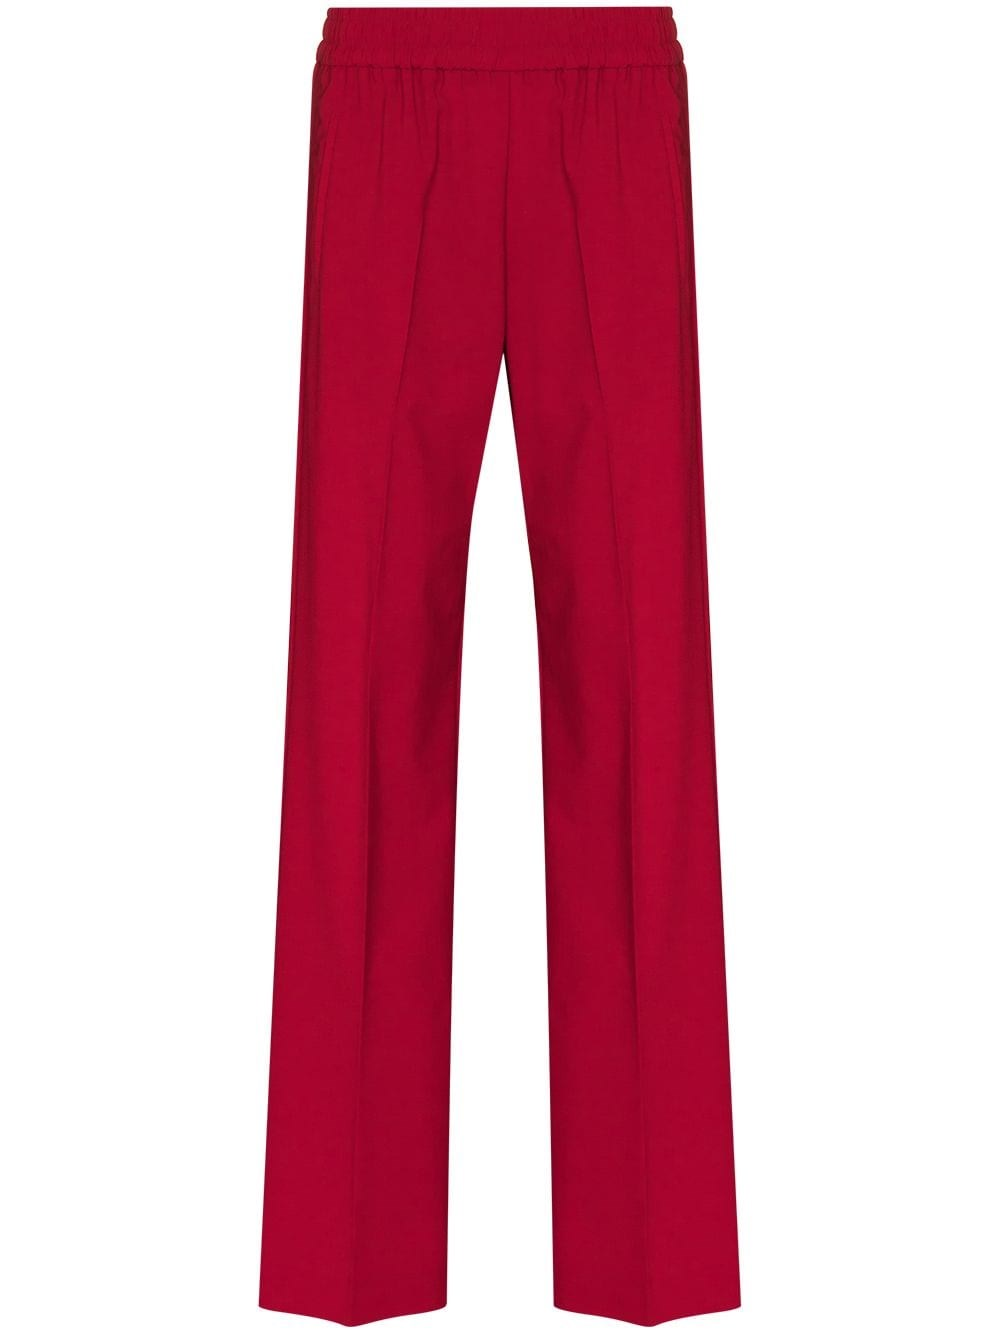 "GOLDEN GOOSE DELUXE BRAND ""Brittany"" Red Trousers"